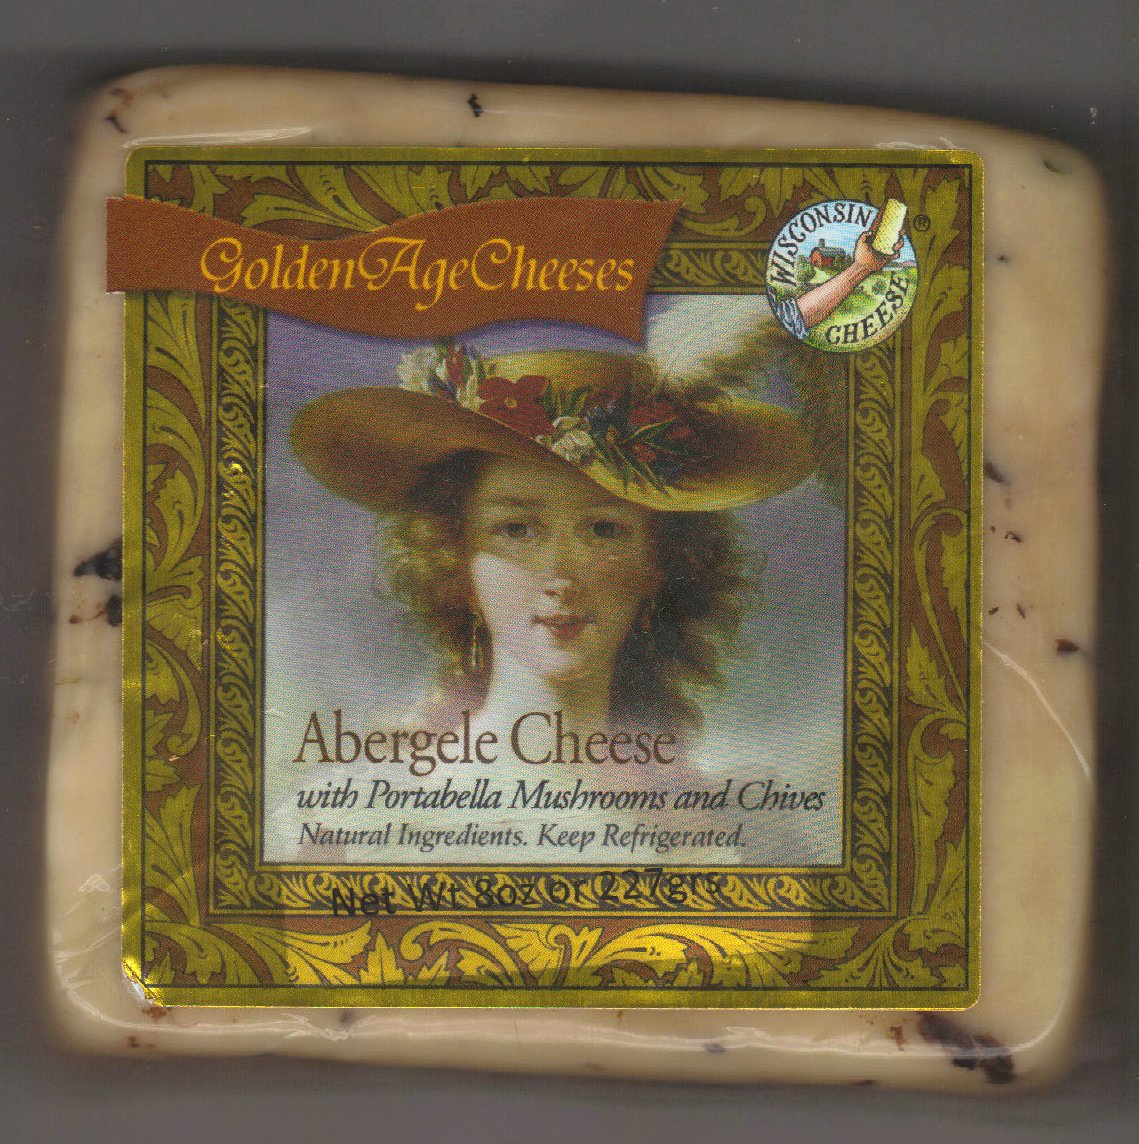 Golden Age Cheeses Portabella mushrooms and chives  2lbs Real Wisconsin Cheese